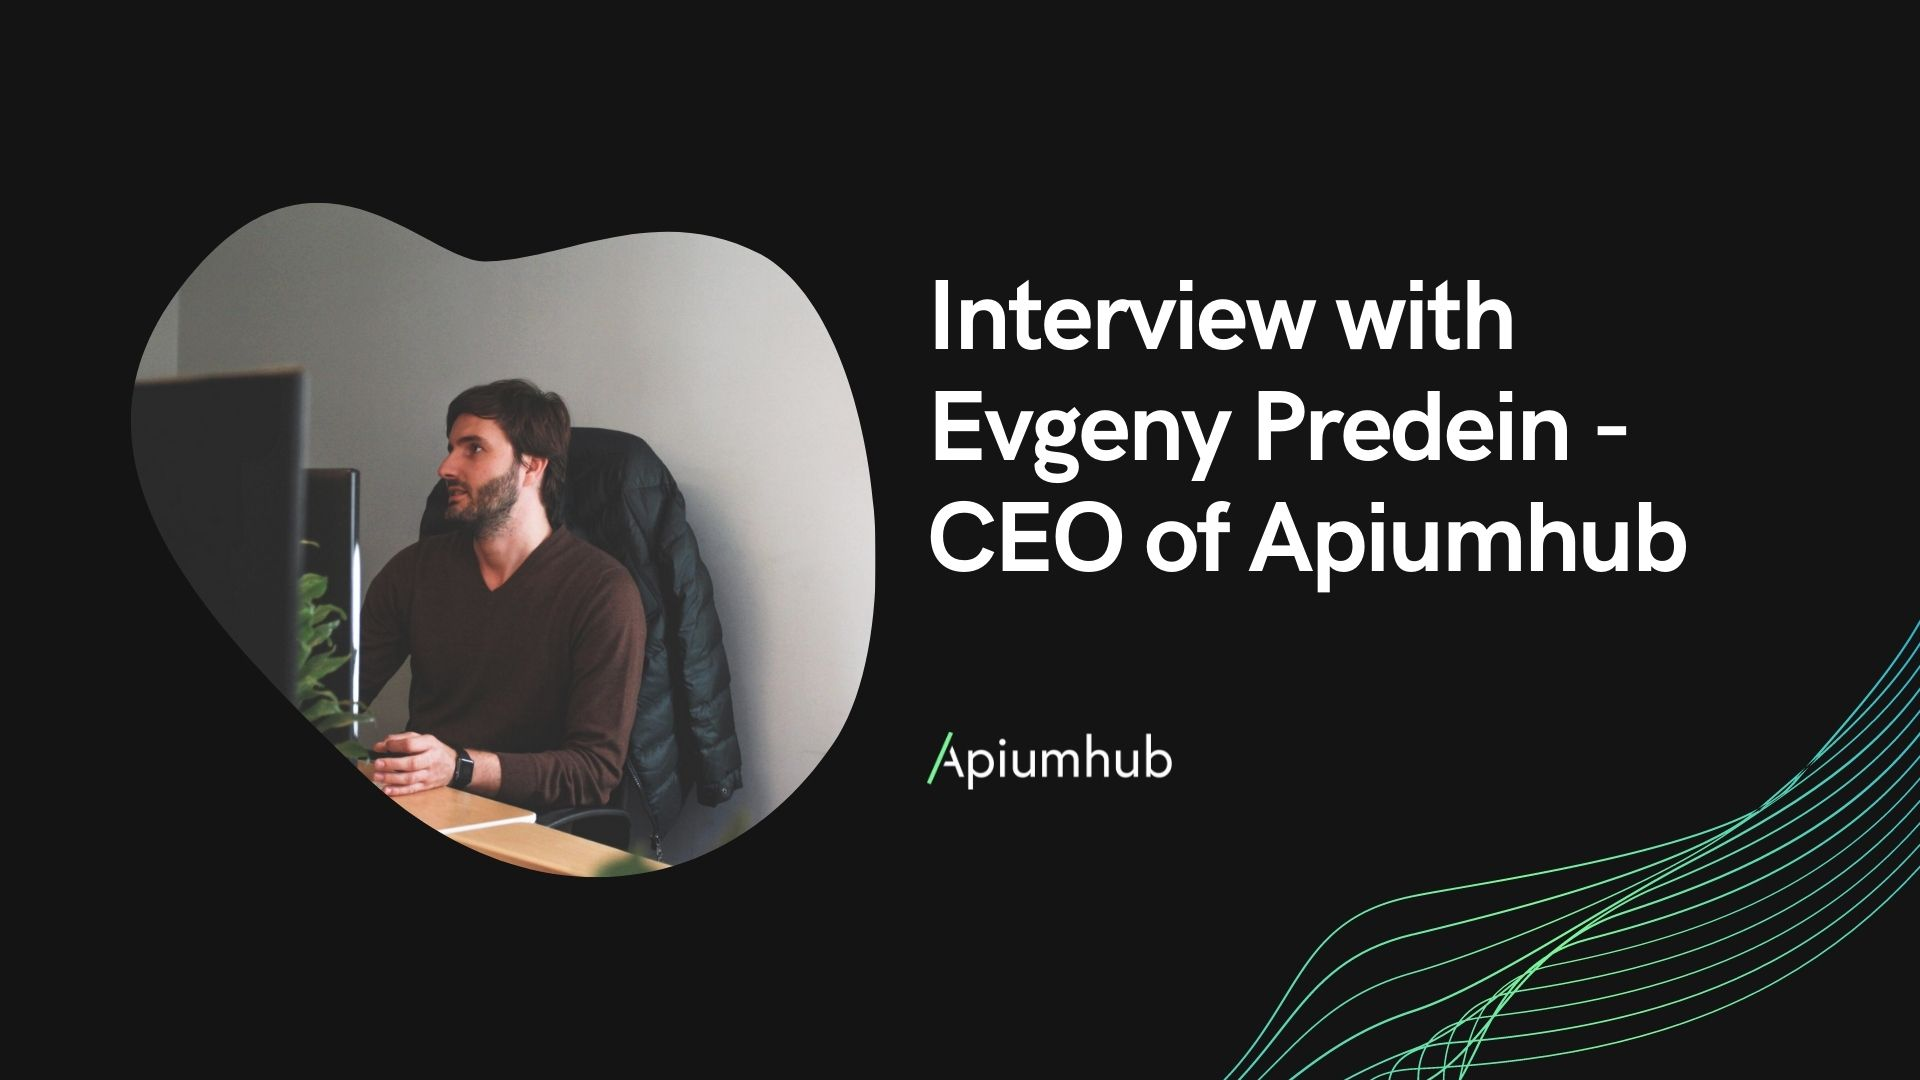 Interview with Evgeny Predein - CEO of Apiumhub